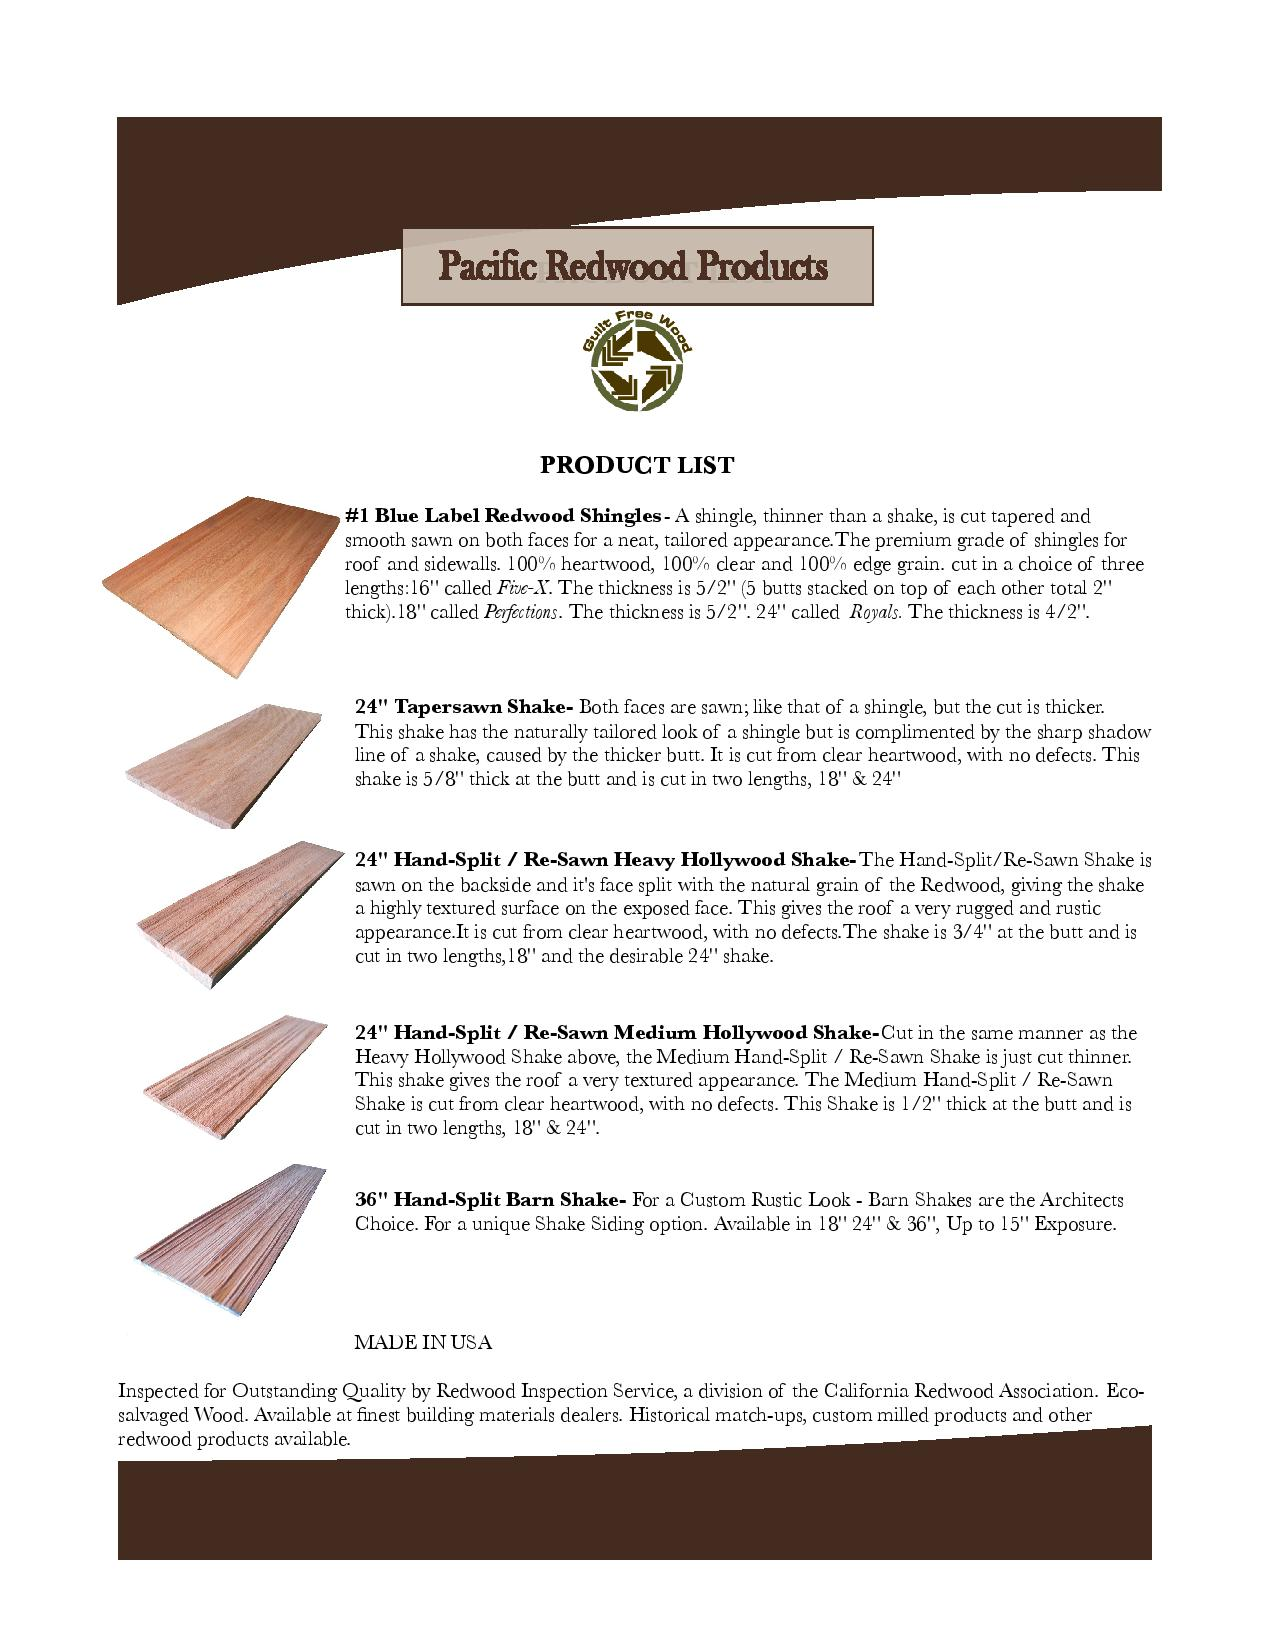 Redwood shingles & shakes-Pacific Redwood Products LLC